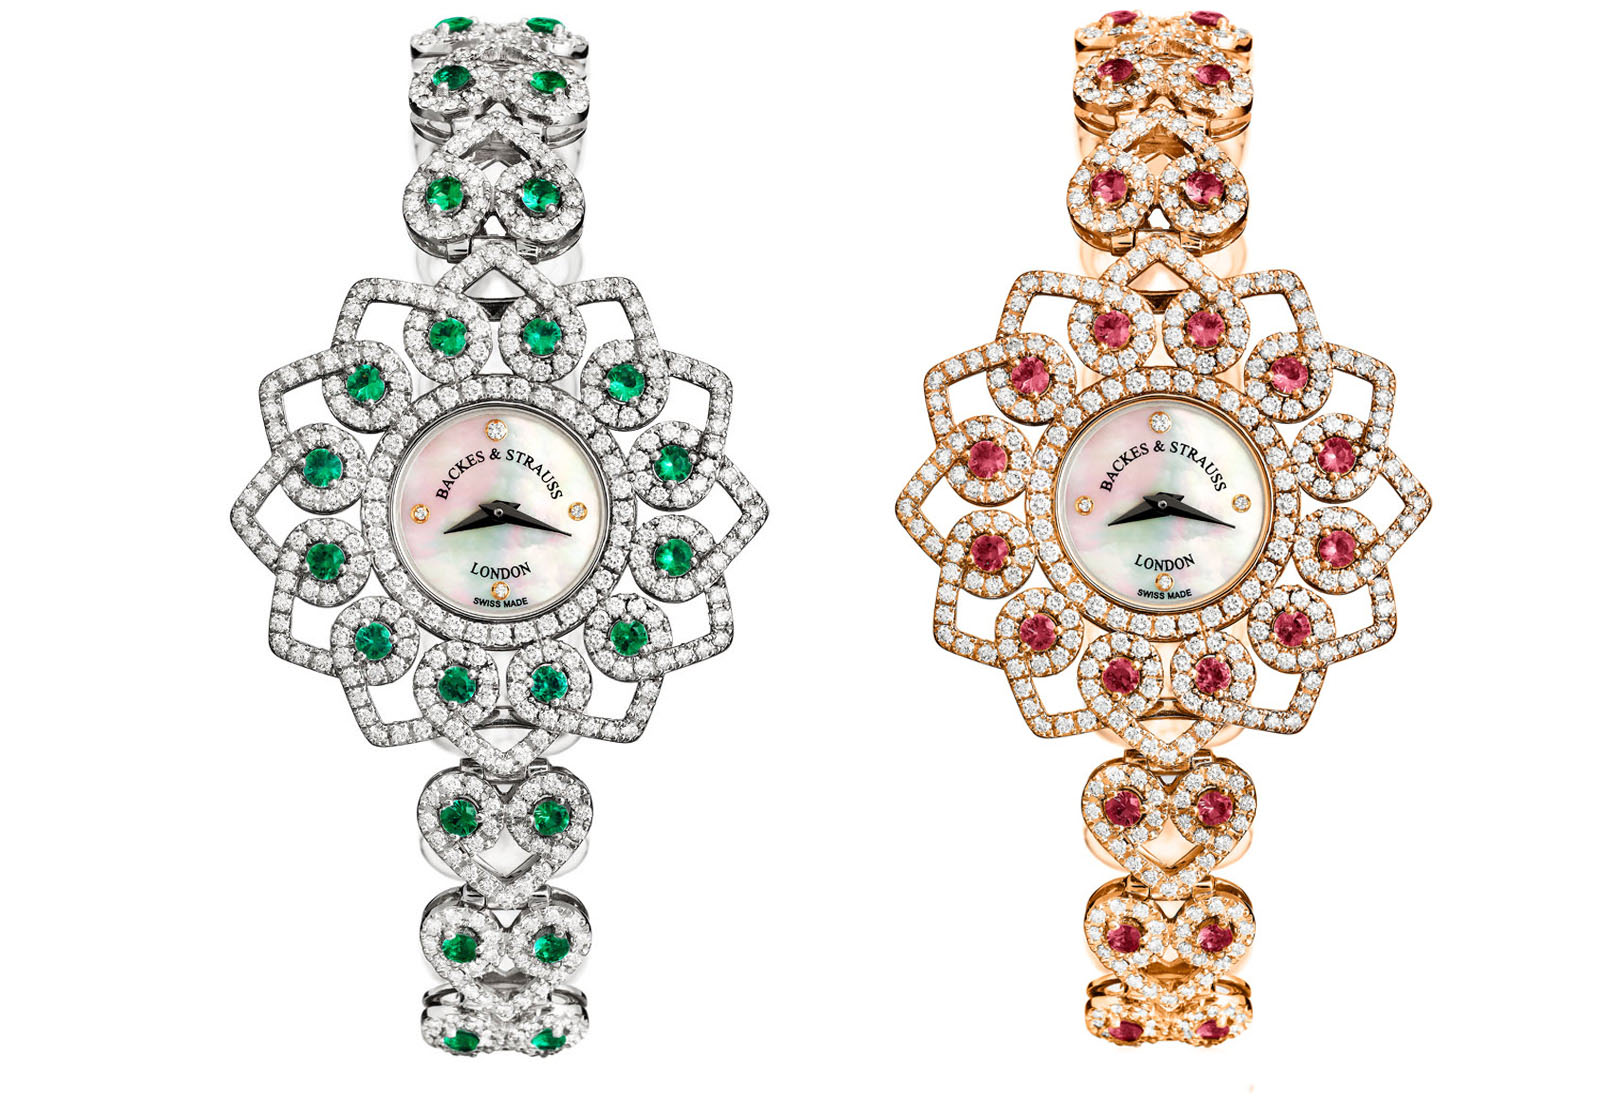 Backes and Strausse Victoria Princess watches